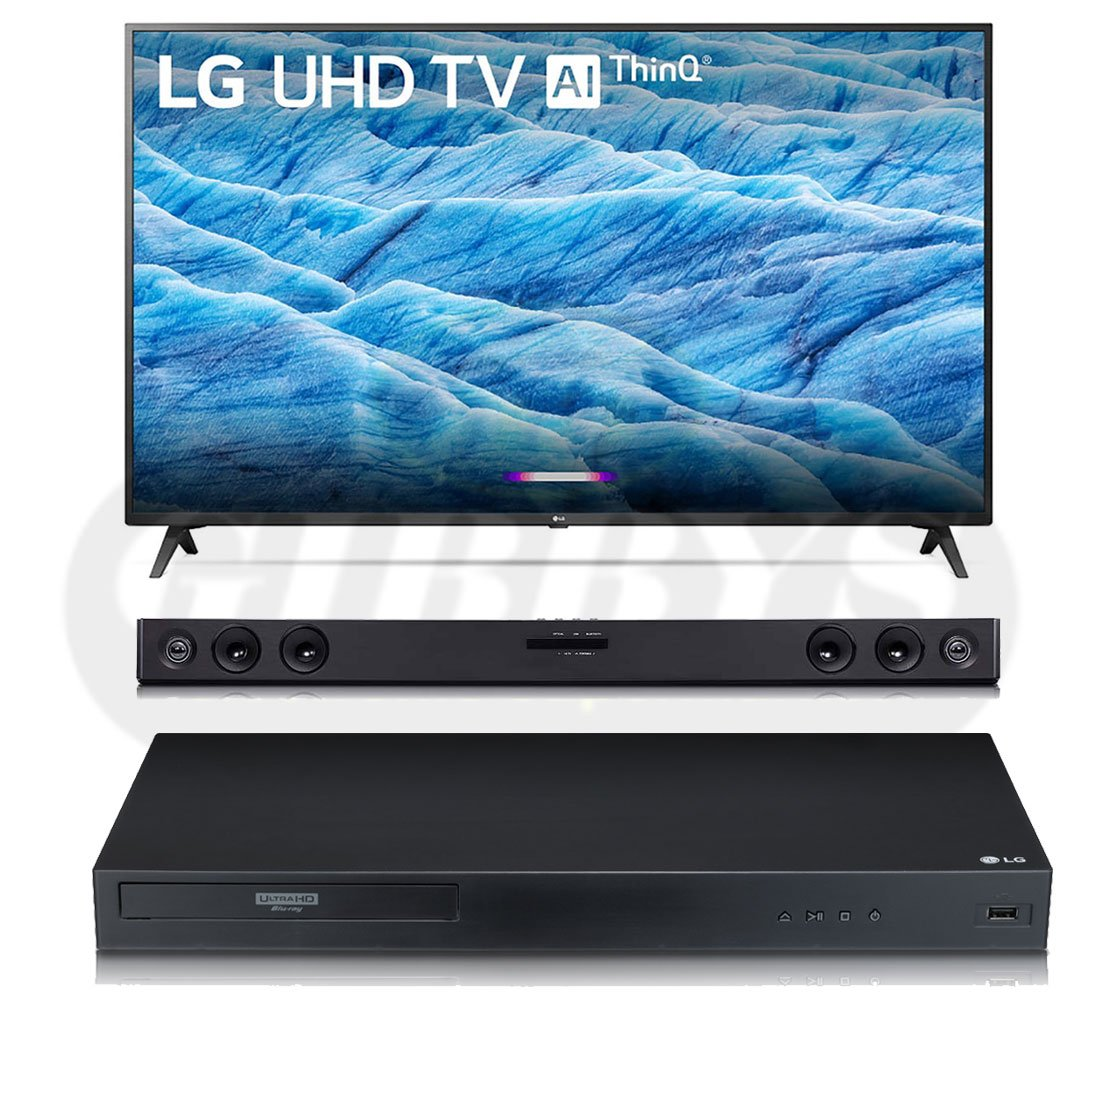 LG 43UM7300 43″ Class Smart LED TV | SJ3 Soundbar | UBK80 Player